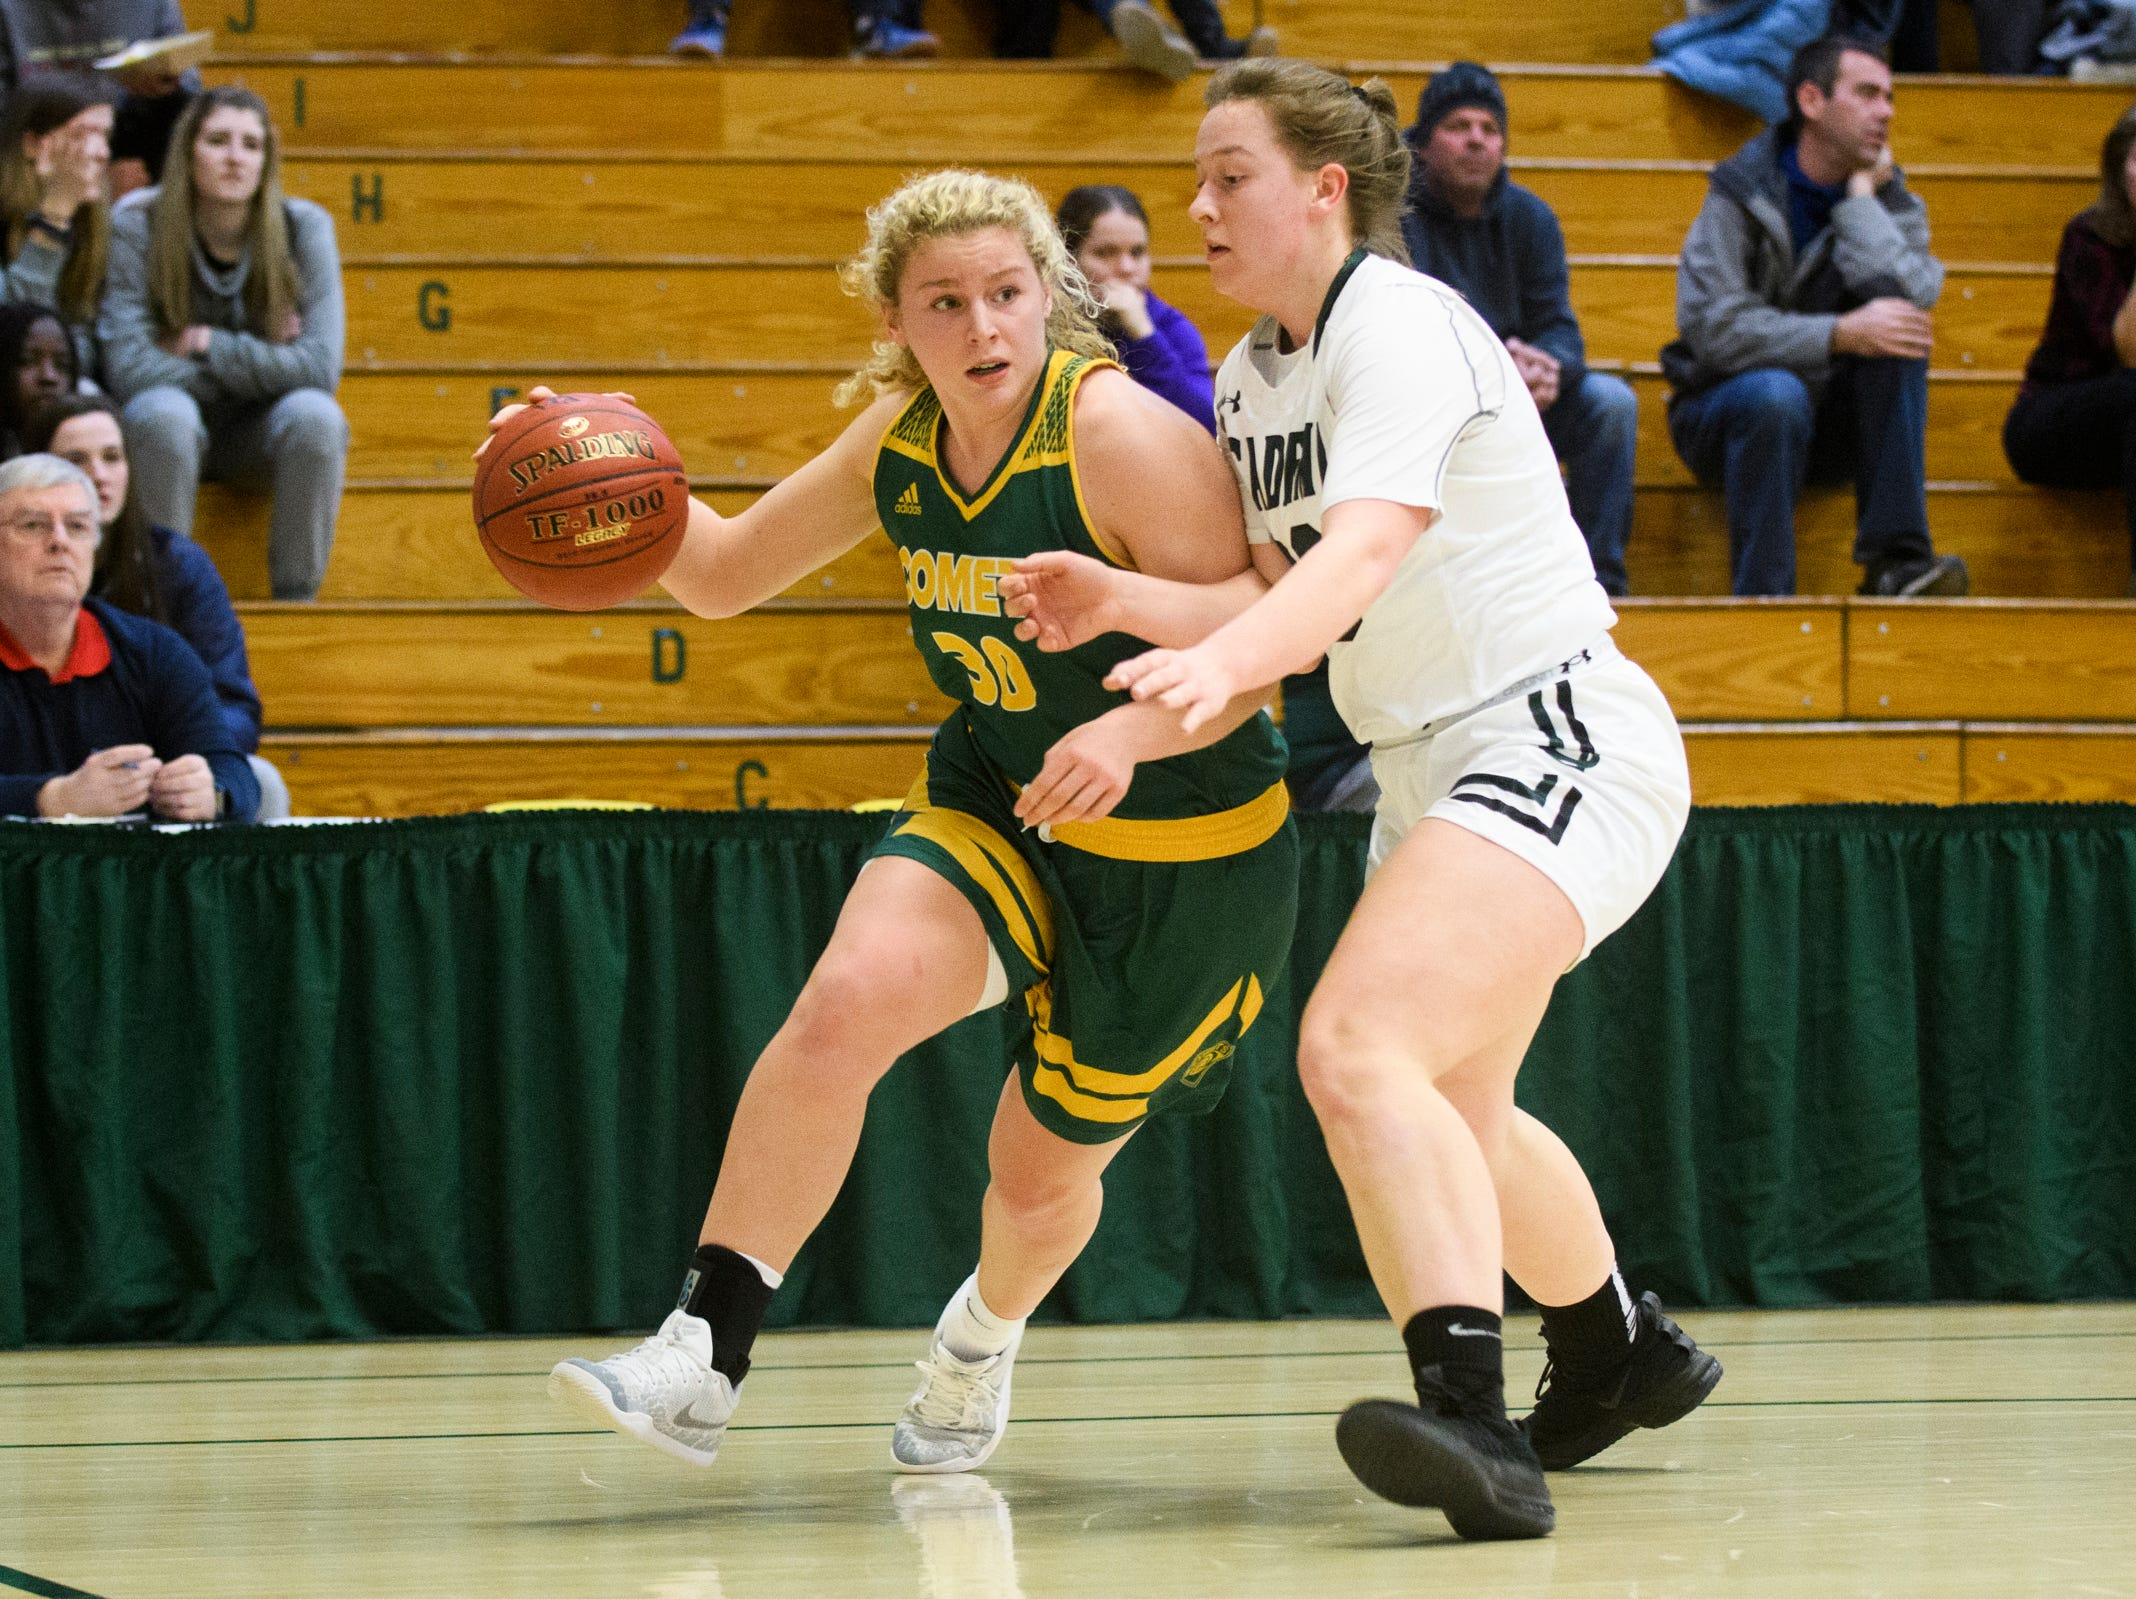 BFA's Kelly Laggis (30) drives to the hoop past St. Johnsbury's Saleena Porter (00) during the girls semifinal basketball game between the BFA St. Albans Comets and the St. Johnsbury Hilltoppers at Patrick Gym on Wednesday night March 6, 2019 in Burlington, Vermont.